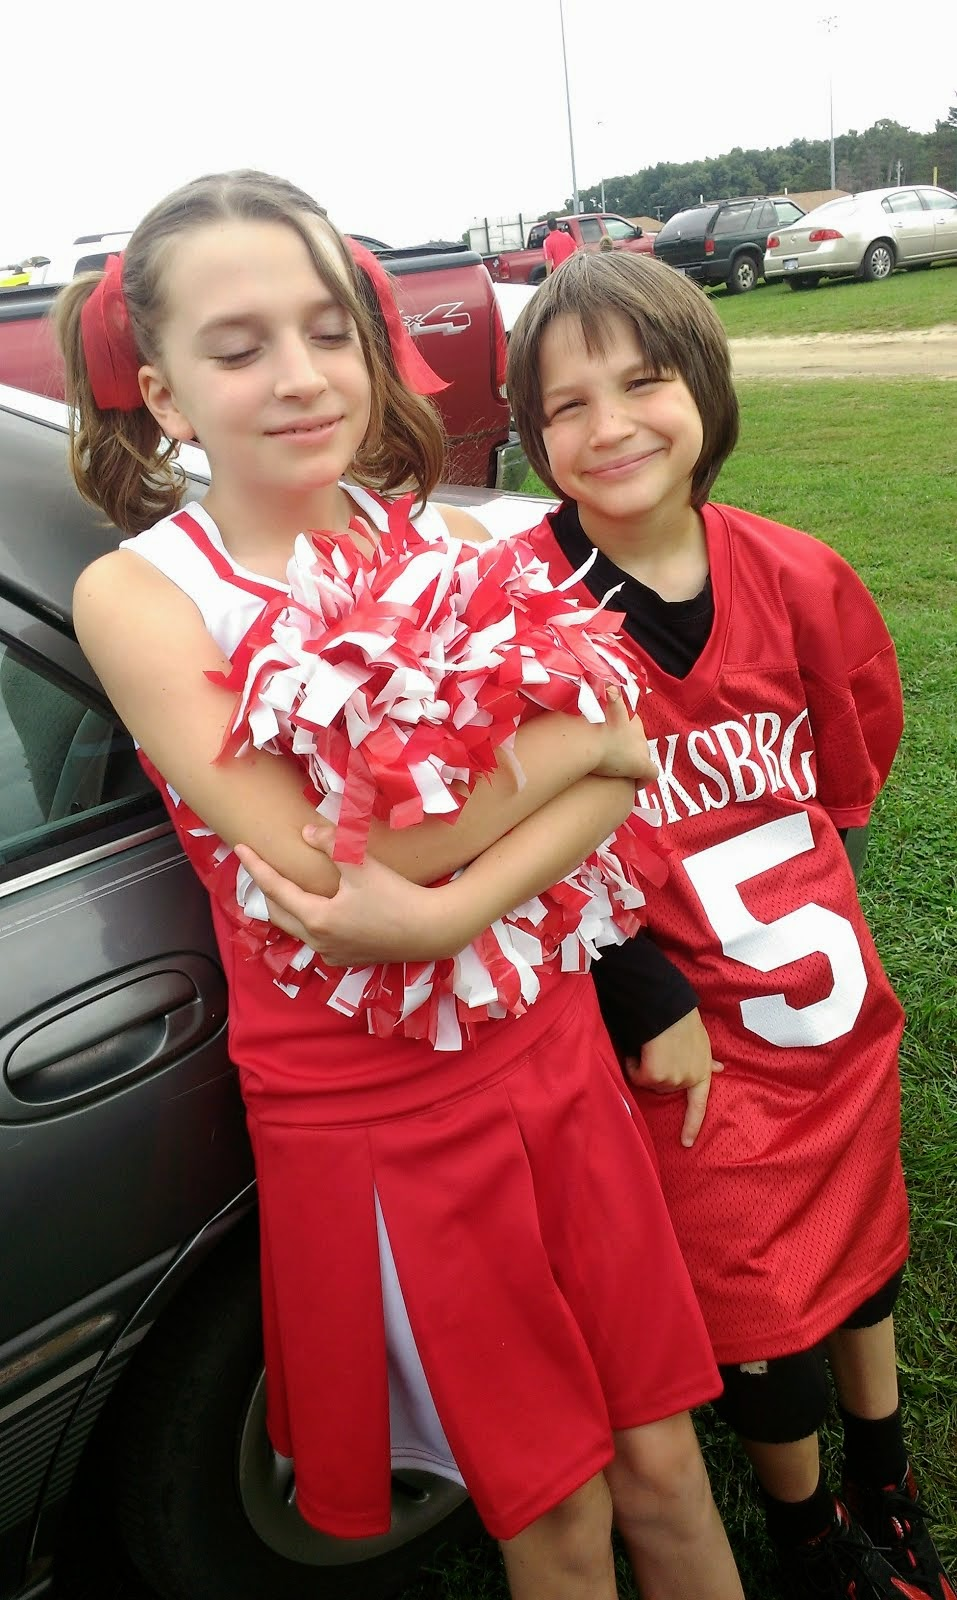 Elijah and his Cheerleader